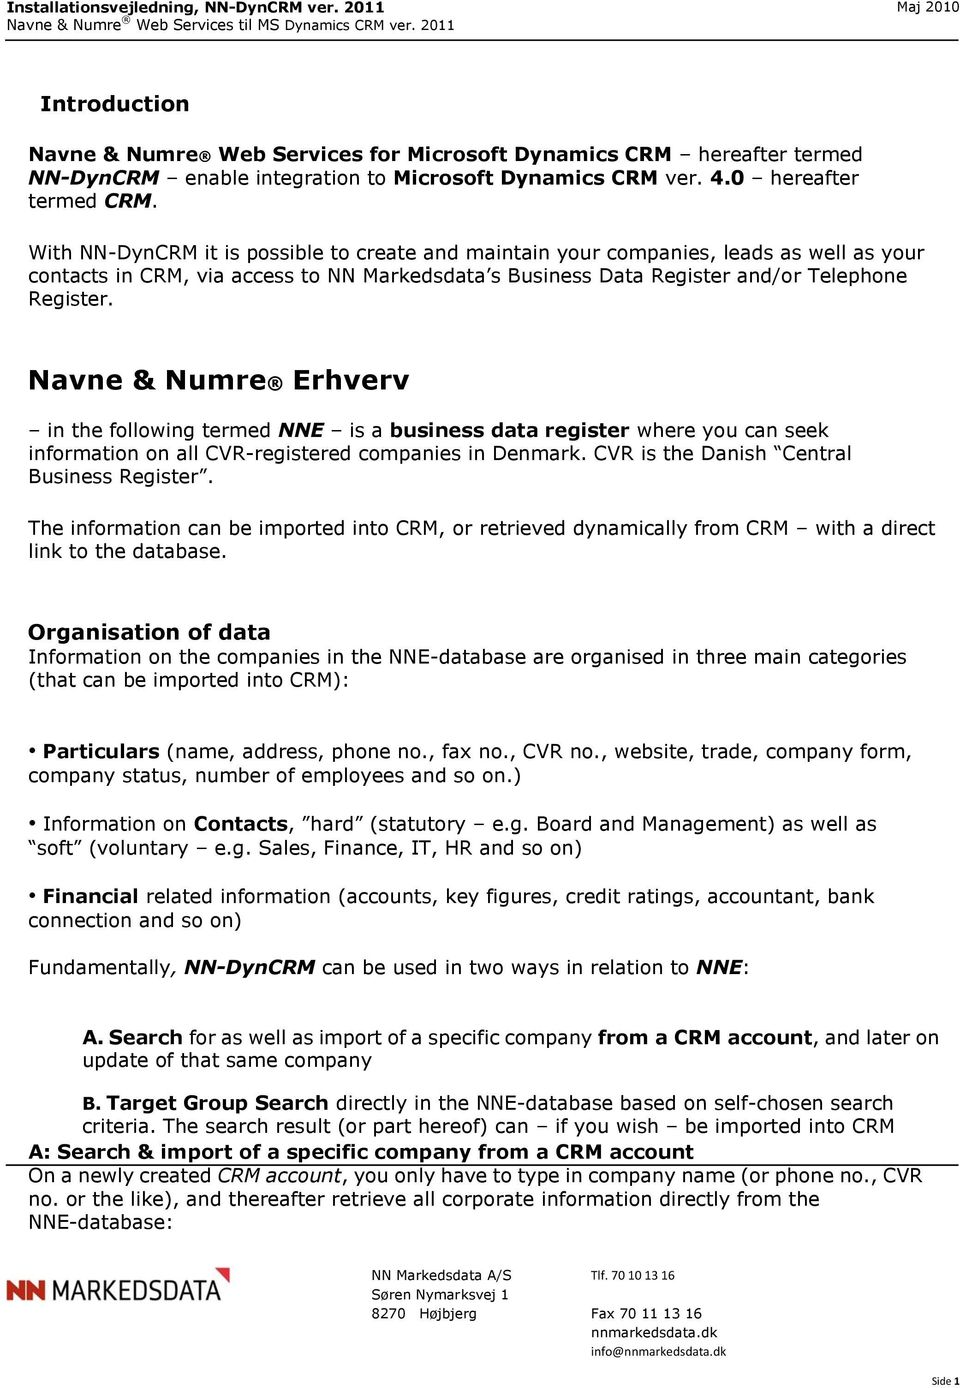 Navne & Numre Erhverv in the following termed NNE is a business data register where you can seek information on all CVR-registered companies in Denmark. CVR is the Danish Central Business Register.